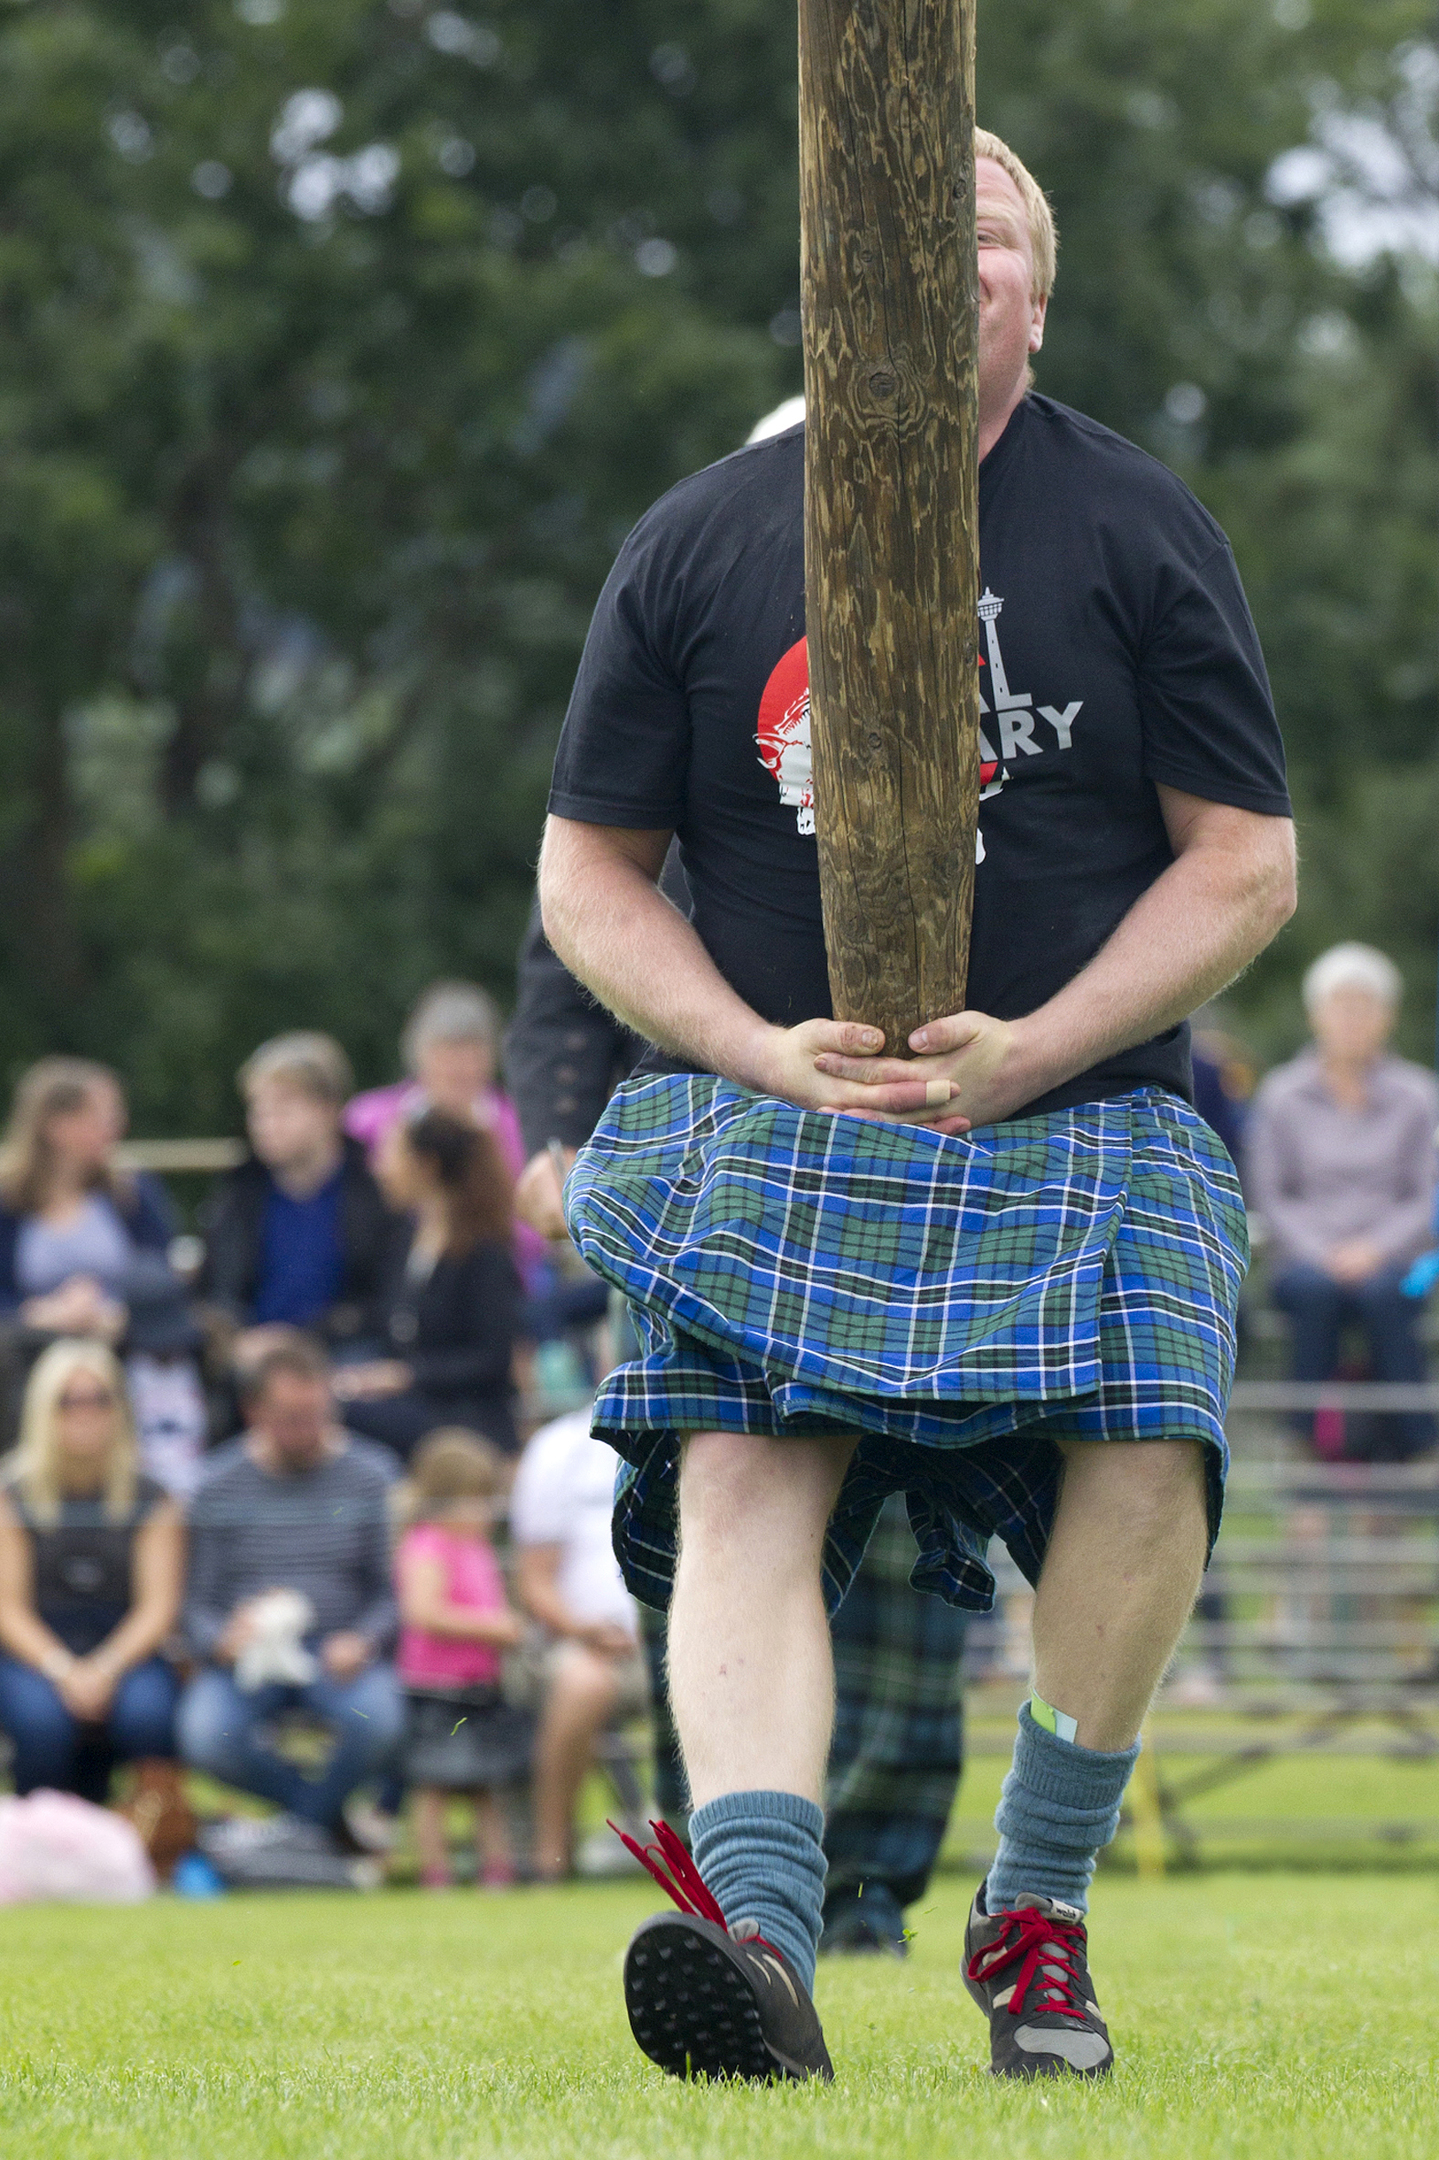 Caber 2 - Tommy Fyvie of Aboyne tossing the caber